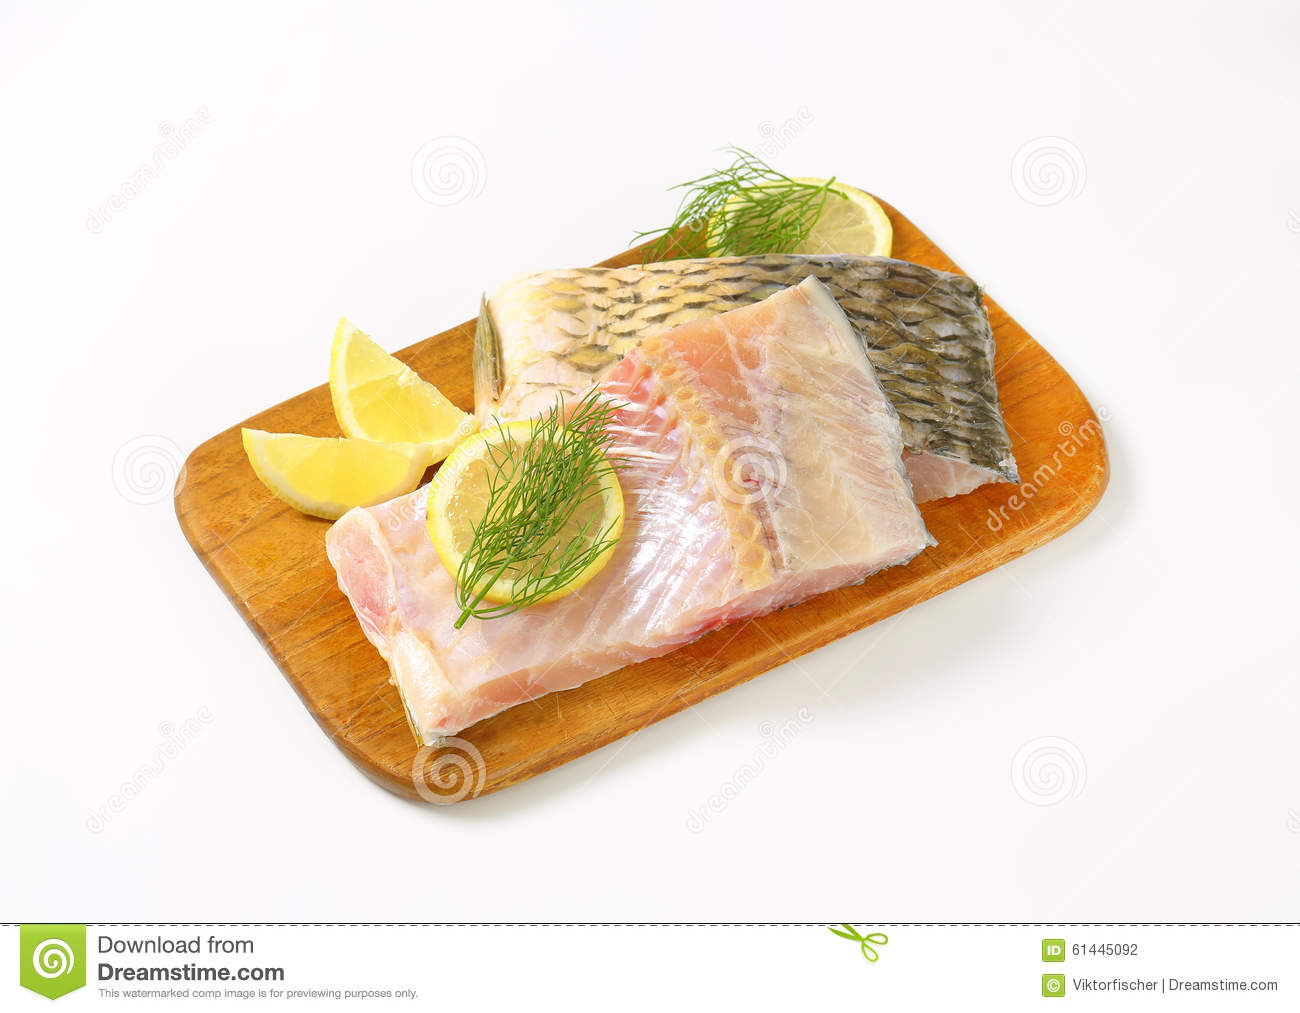 how to cook carp fillets